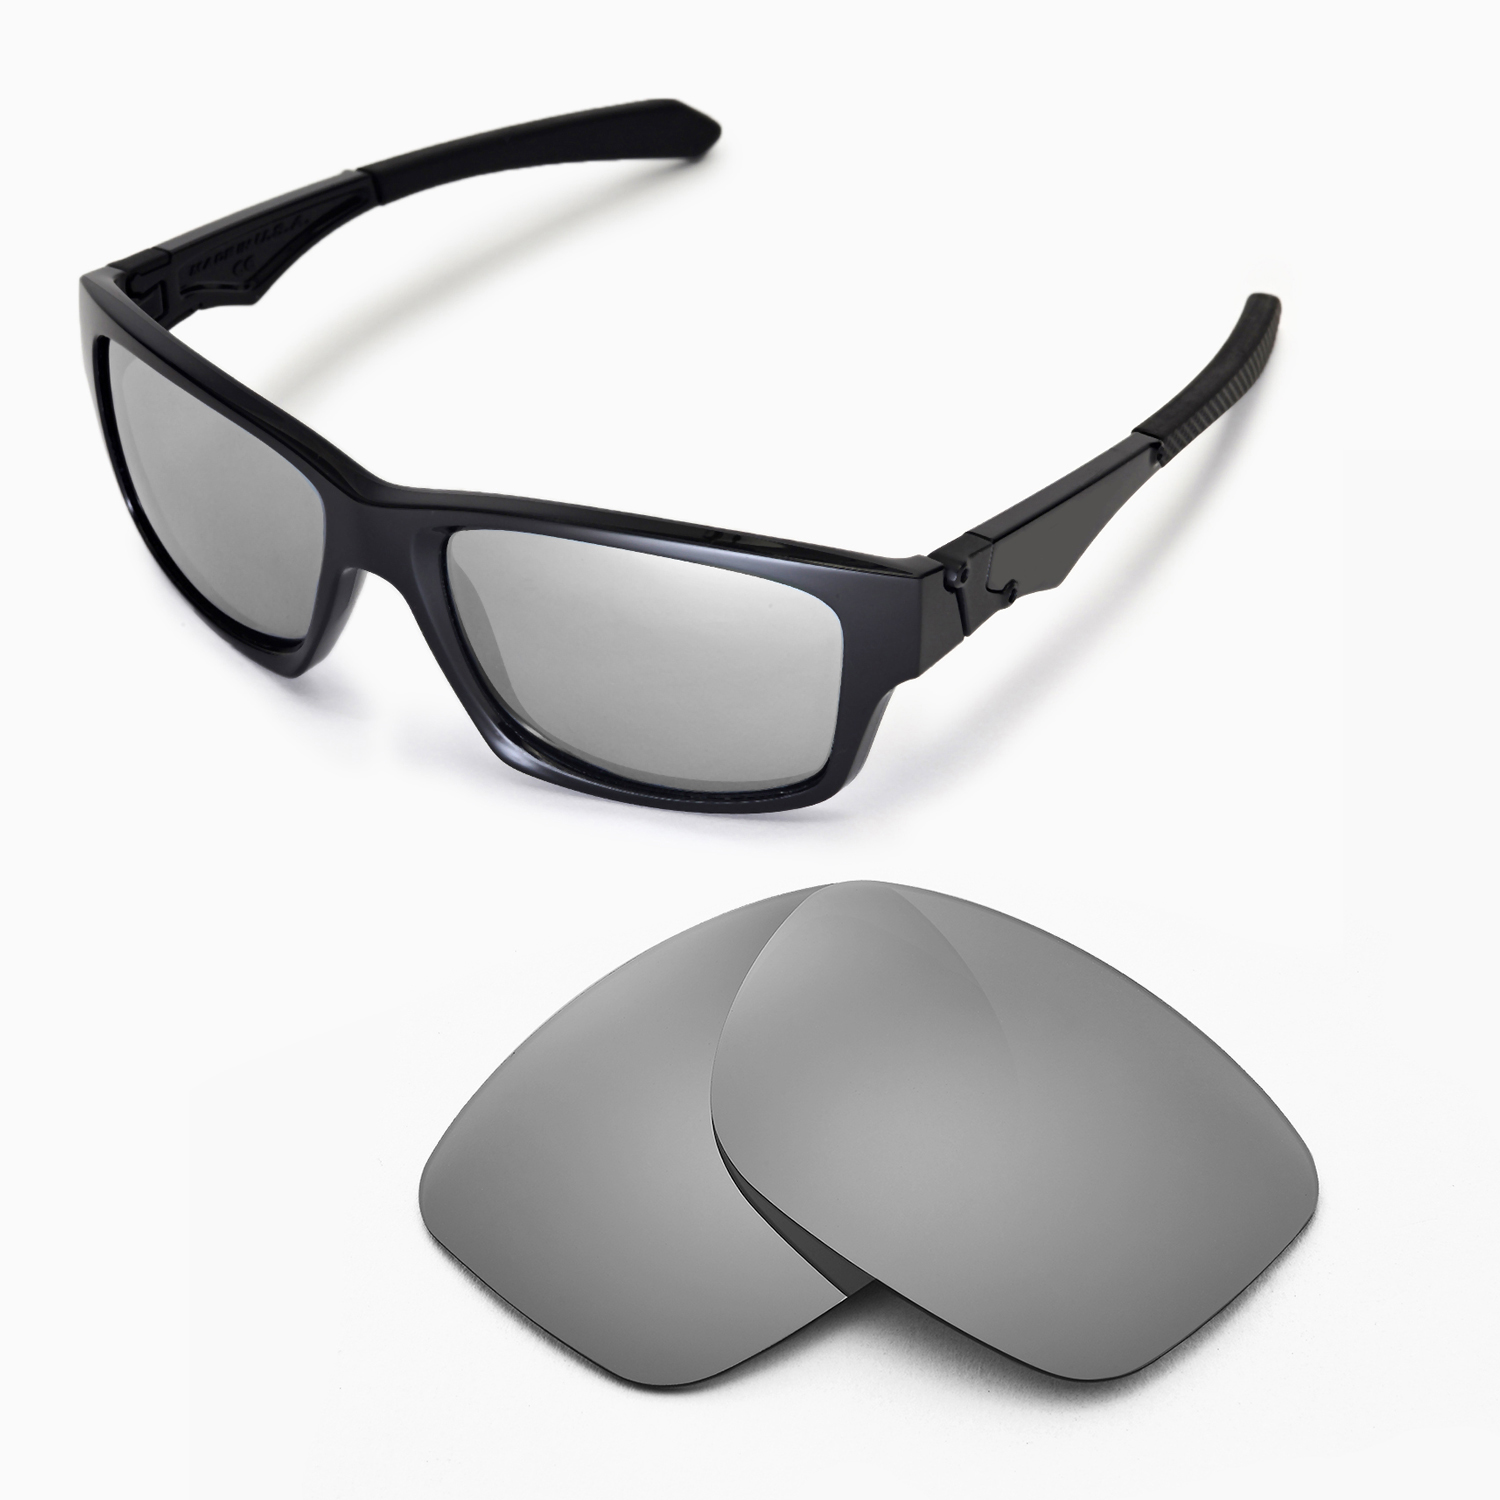 4292140ee4 Details about WL Polarized Titanium Replacement Lenses For Oakley Jupiter  Squared Sunglasses